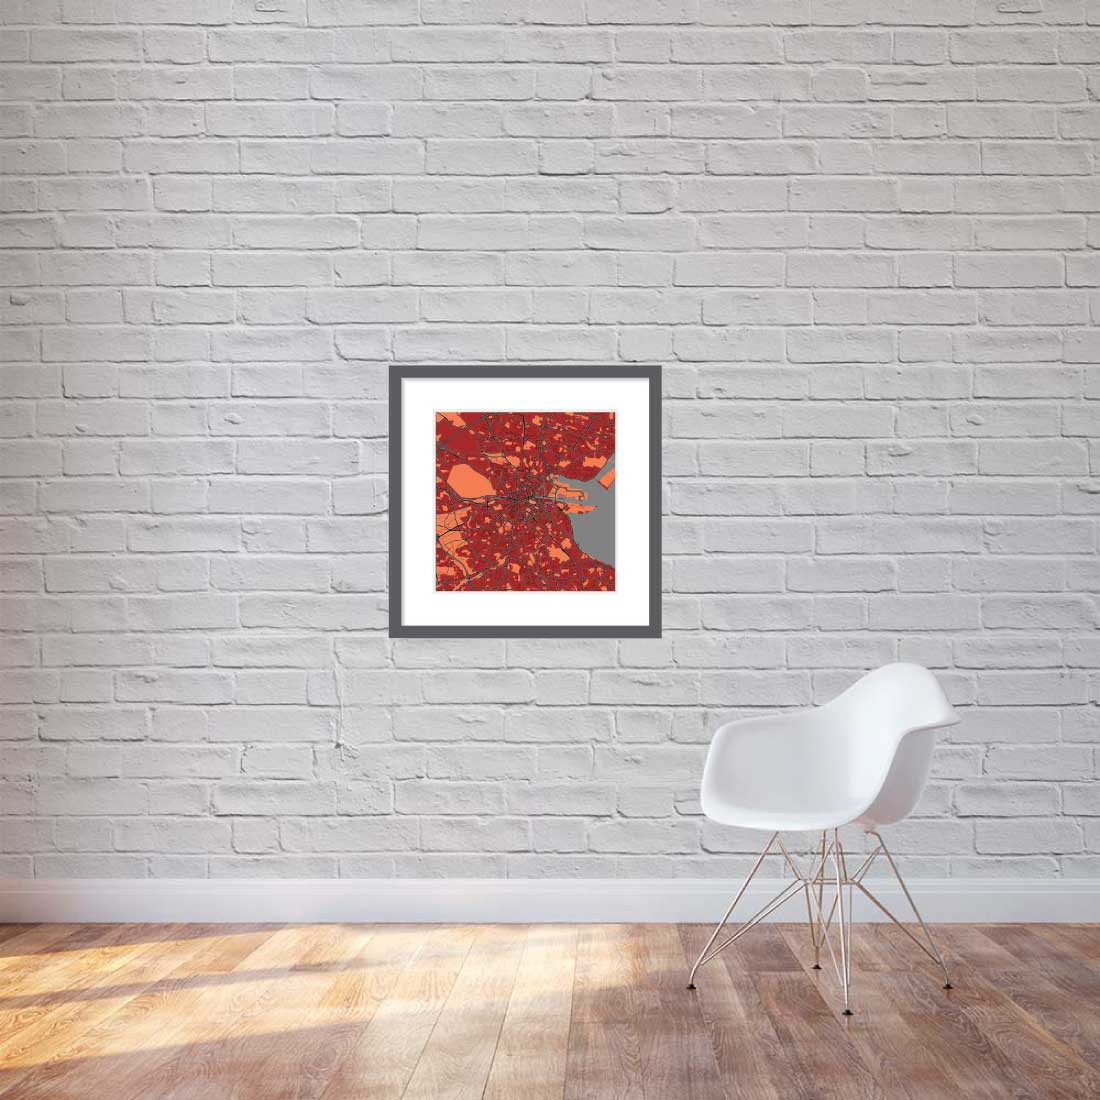 Matt print 60cmx60cm Dublin Stylish Brick